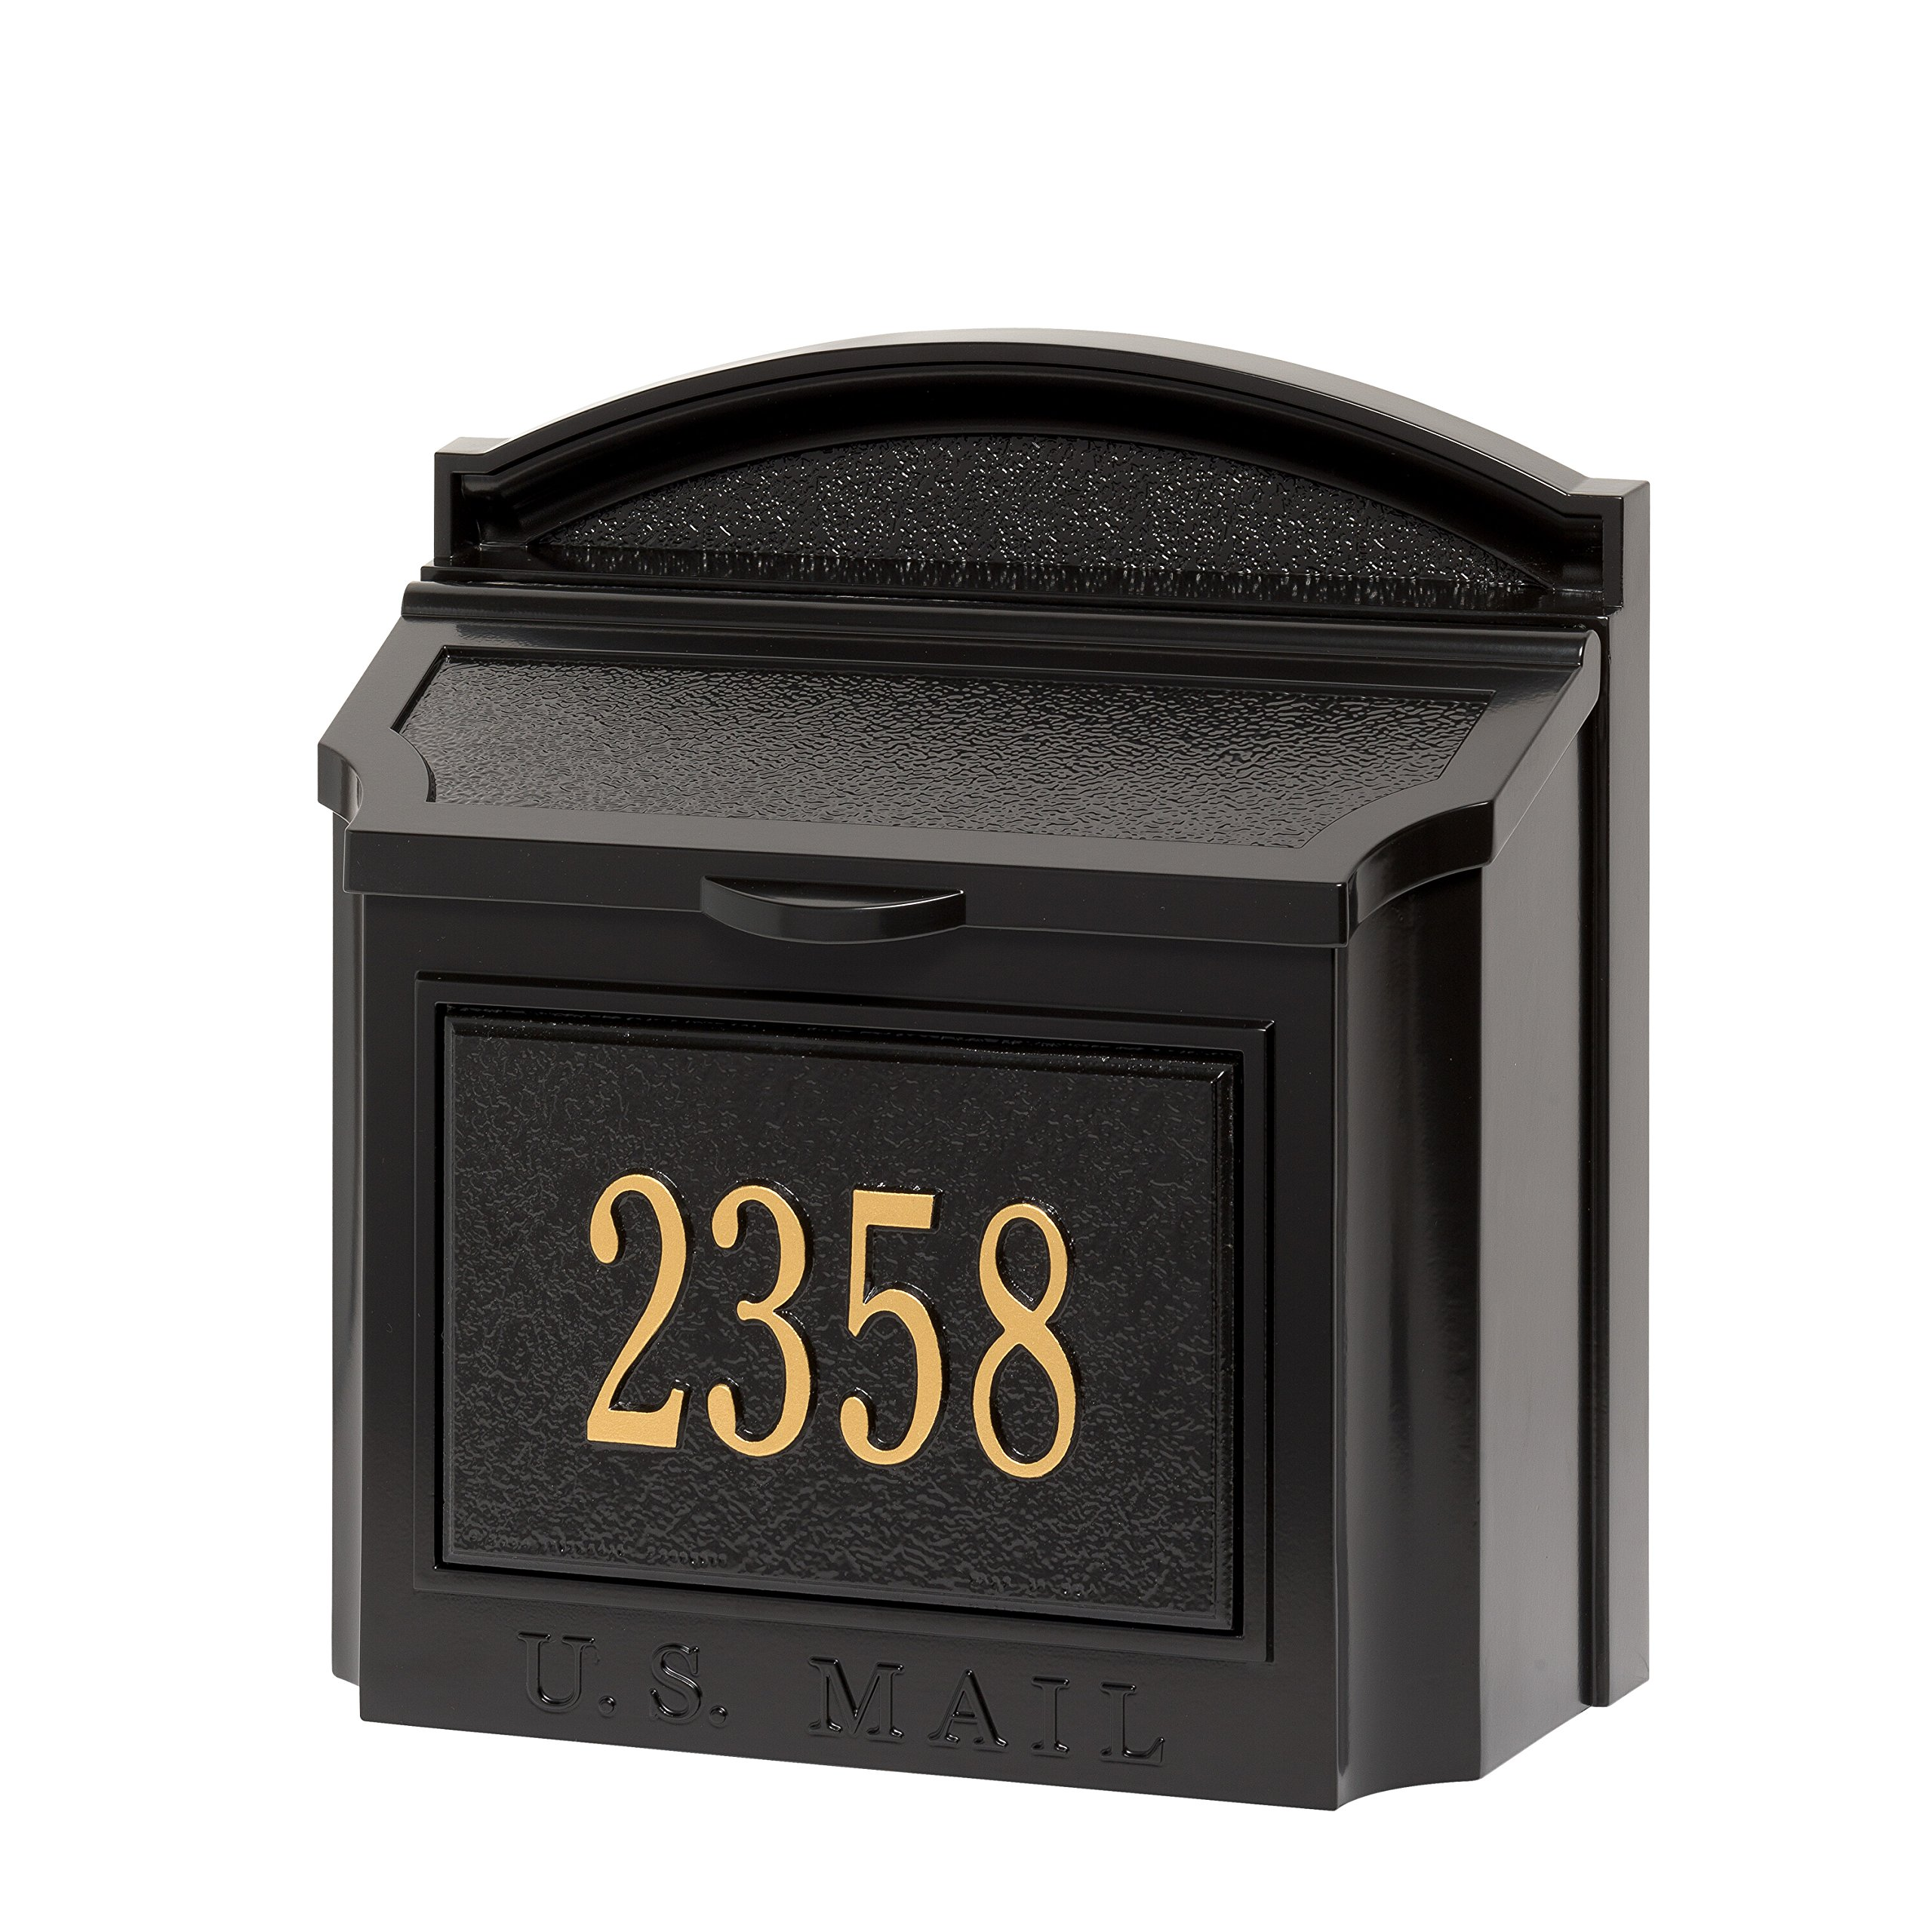 Whitehall Products Wall Mailbox Package. Black Mailbox with Personalized Insert!